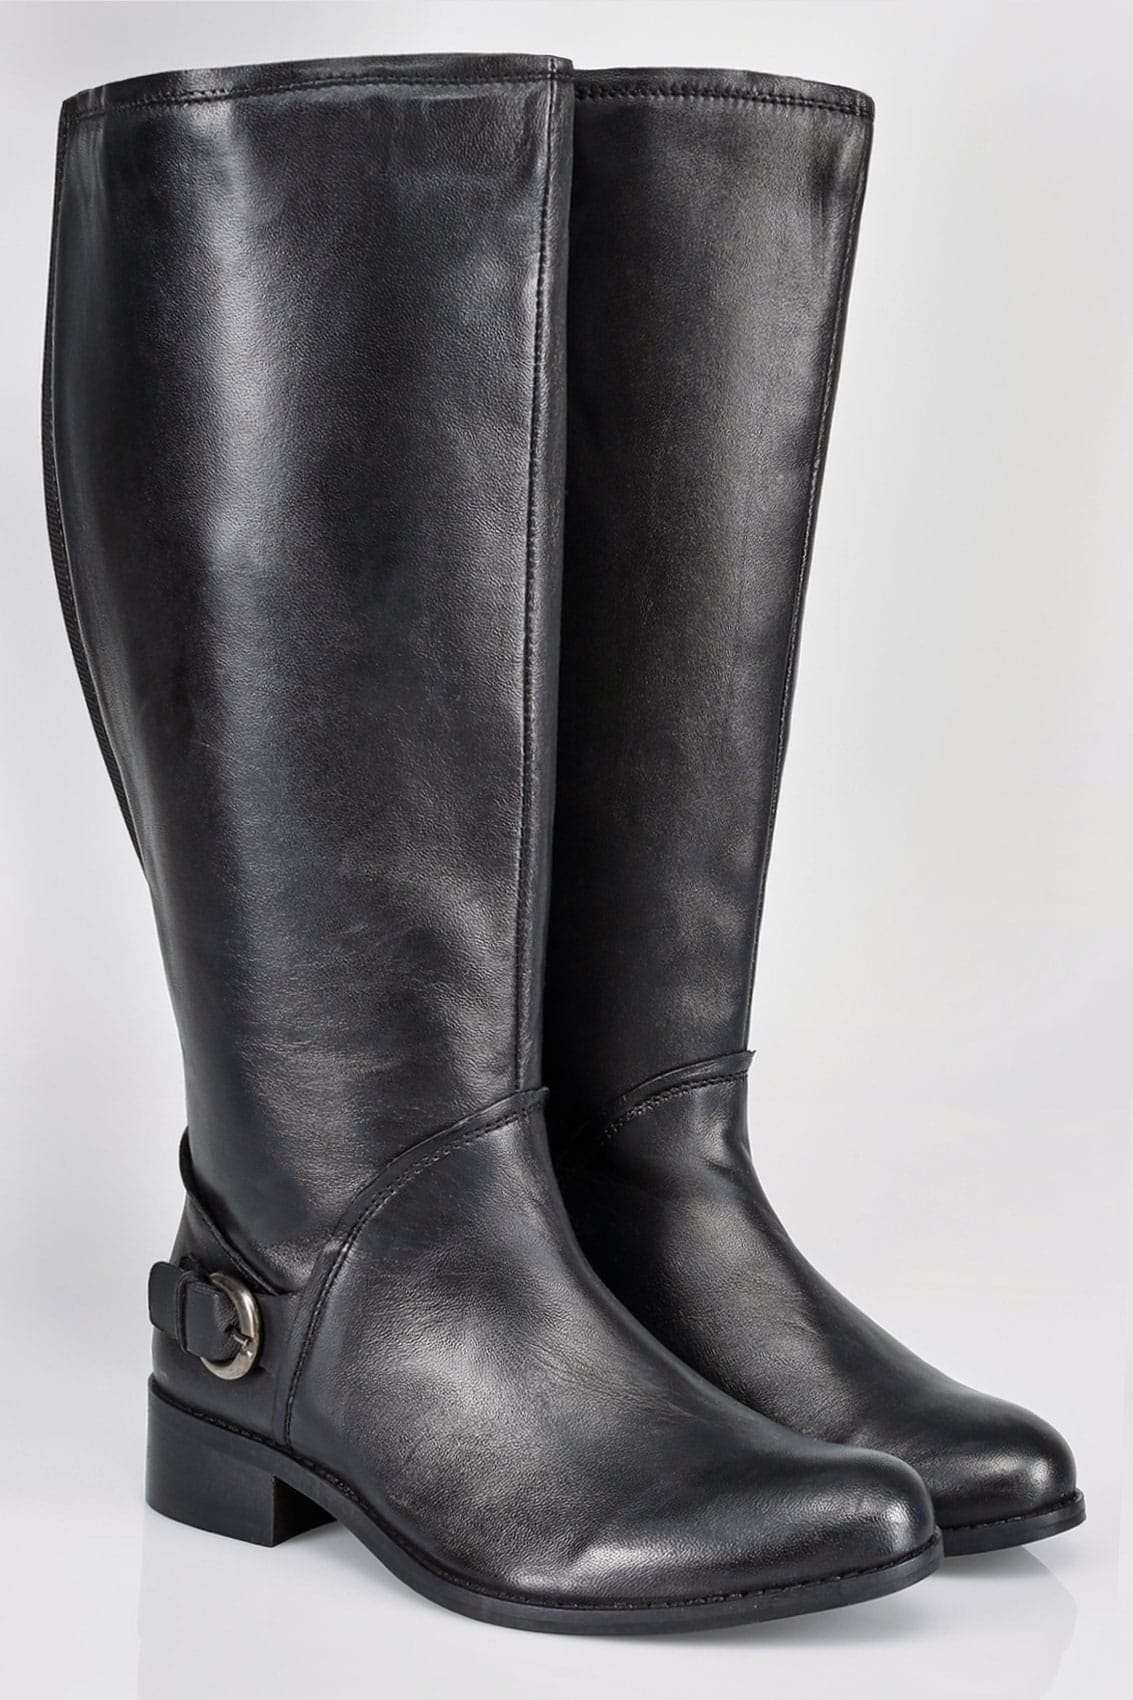 Black Leather Knee High Riding Boots With Buckle Detail In